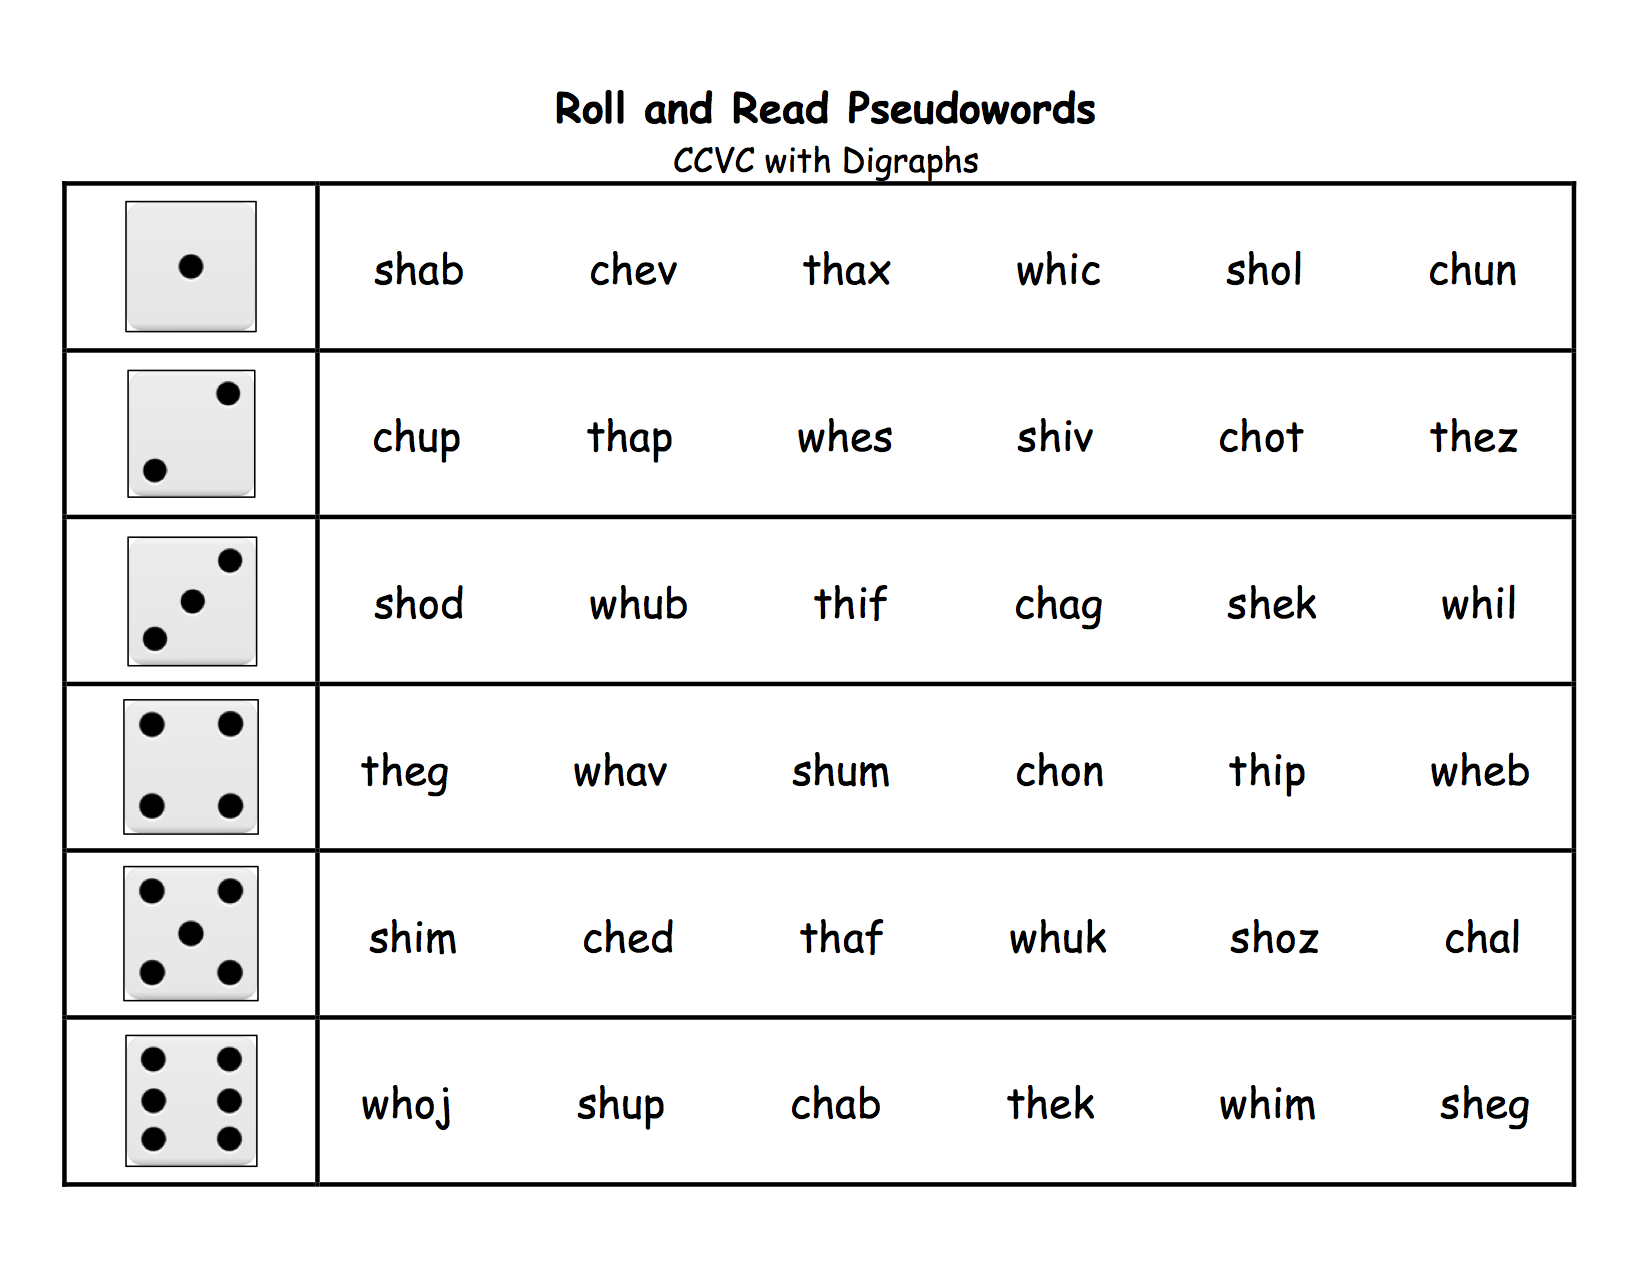 medium resolution of Roll and Read Pseudowords Nonsense Words - Literacy Center - Digraphs